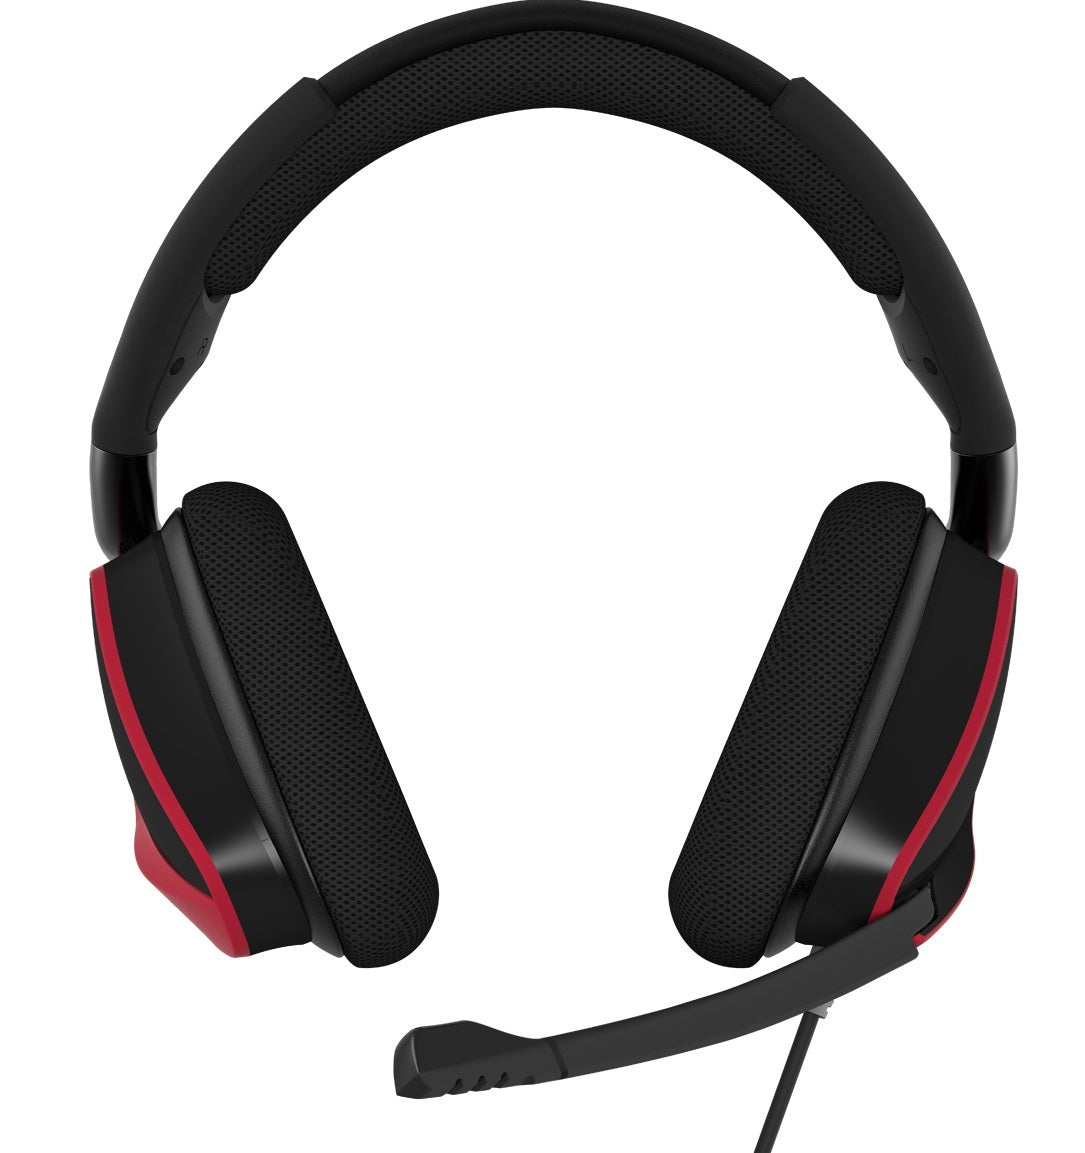 Corsair Void Elite Surround Gaming Headset (Red) - PC Games